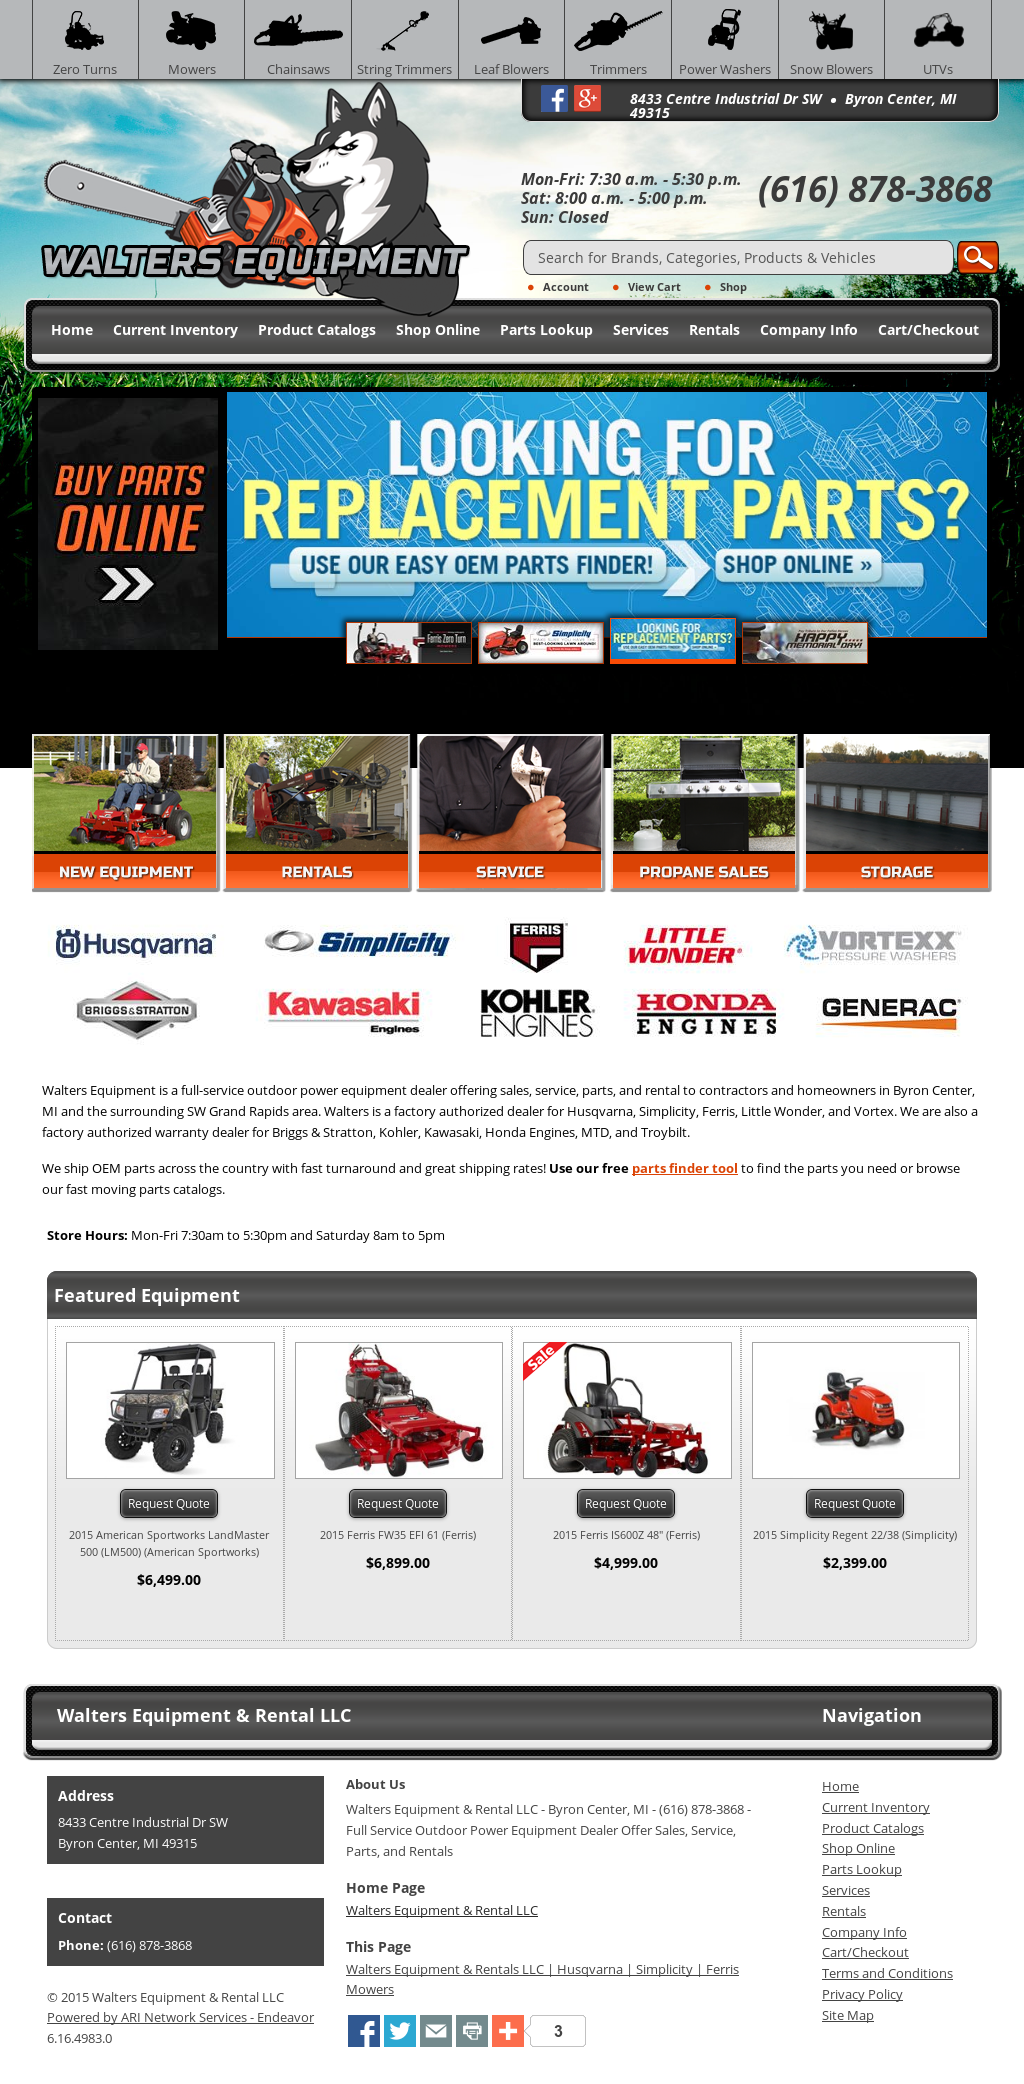 Walters Equipment & Rental Competitors, Revenue and Employees